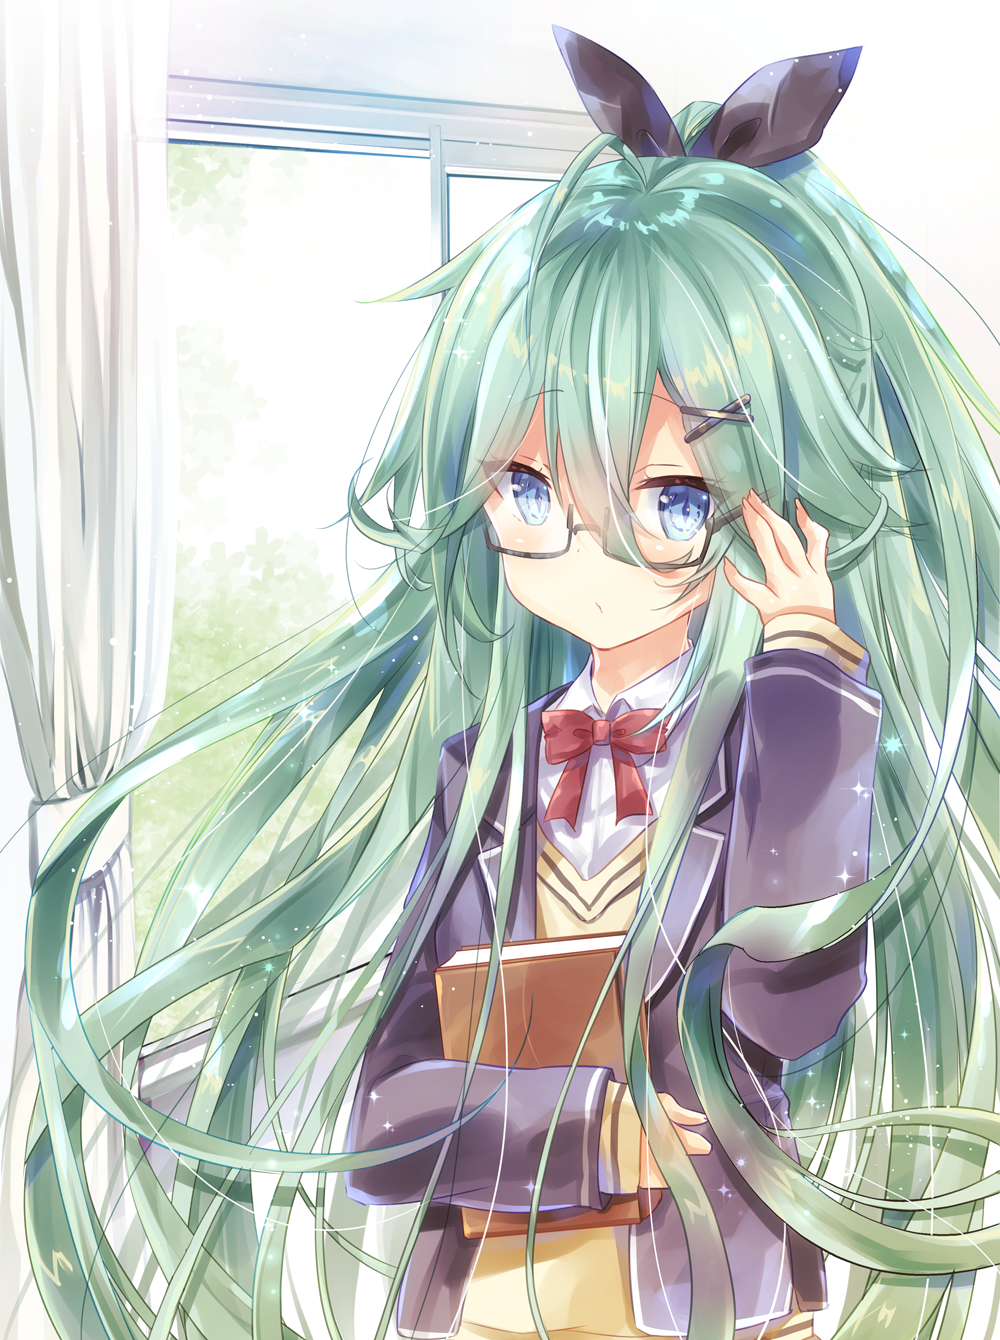 1girl adjusting_eyewear arm_up bangs black-framed_eyewear black_jacket black_ribbon blazer blue_eyes book collared_shirt commentary_request curtains day eyebrows_visible_through_hair fingernails green_hair hair_between_eyes hair_ornament hair_ribbon highres indoors jacket kantai_collection kurun_(kurun777) long_hair long_sleeves object_hug open_blazer open_clothes open_jacket ponytail ribbon semi-rimless_eyewear shirt sleeves_past_wrists solo sweater under-rim_eyewear very_long_hair white_shirt window x_hair_ornament yamakaze_(kantai_collection) yellow_sweater